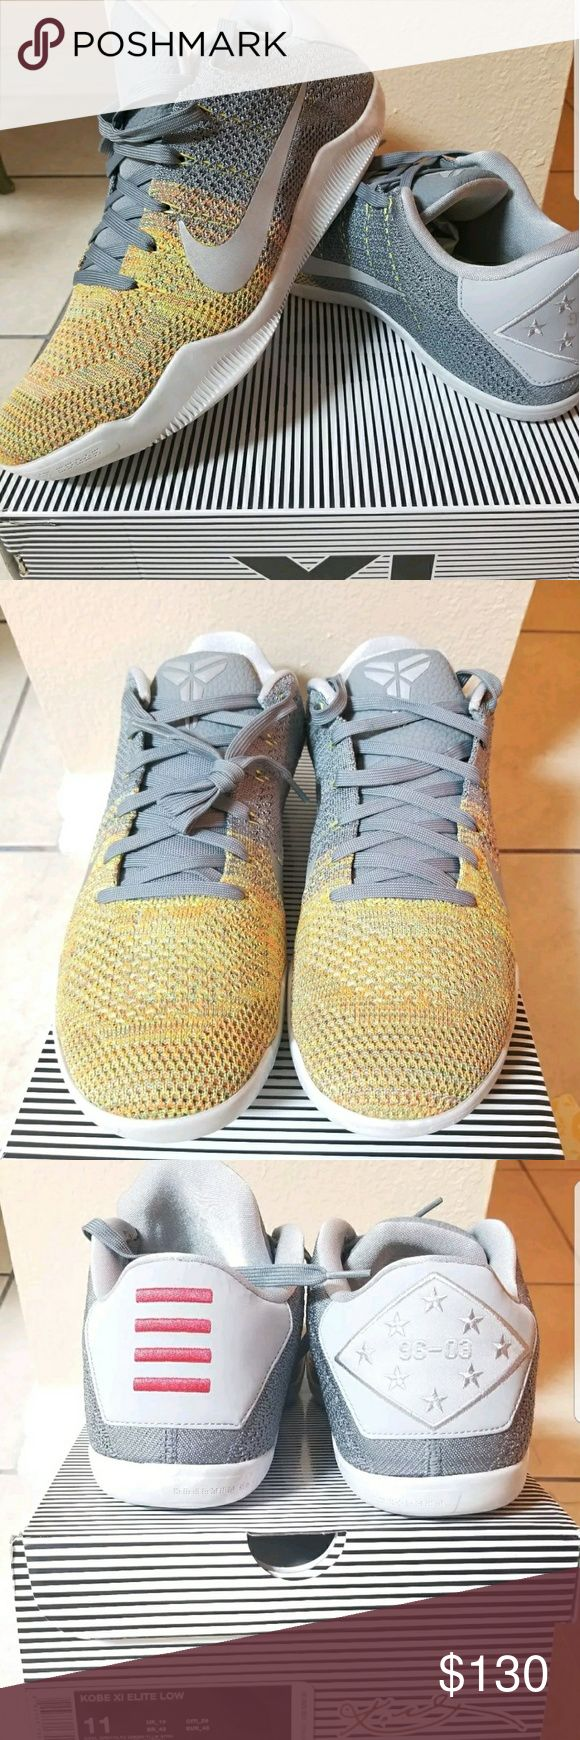 """Nike Kobe 11 (XI) Elite Low """"Master of Innovation"""" Nike Kobe 11 (XI) Elite Low """"Master of Innovation"""" size 11. Shoes are mint new in box. Buy with confidence. Thanks for looking! Nike Shoes Sneakers"""